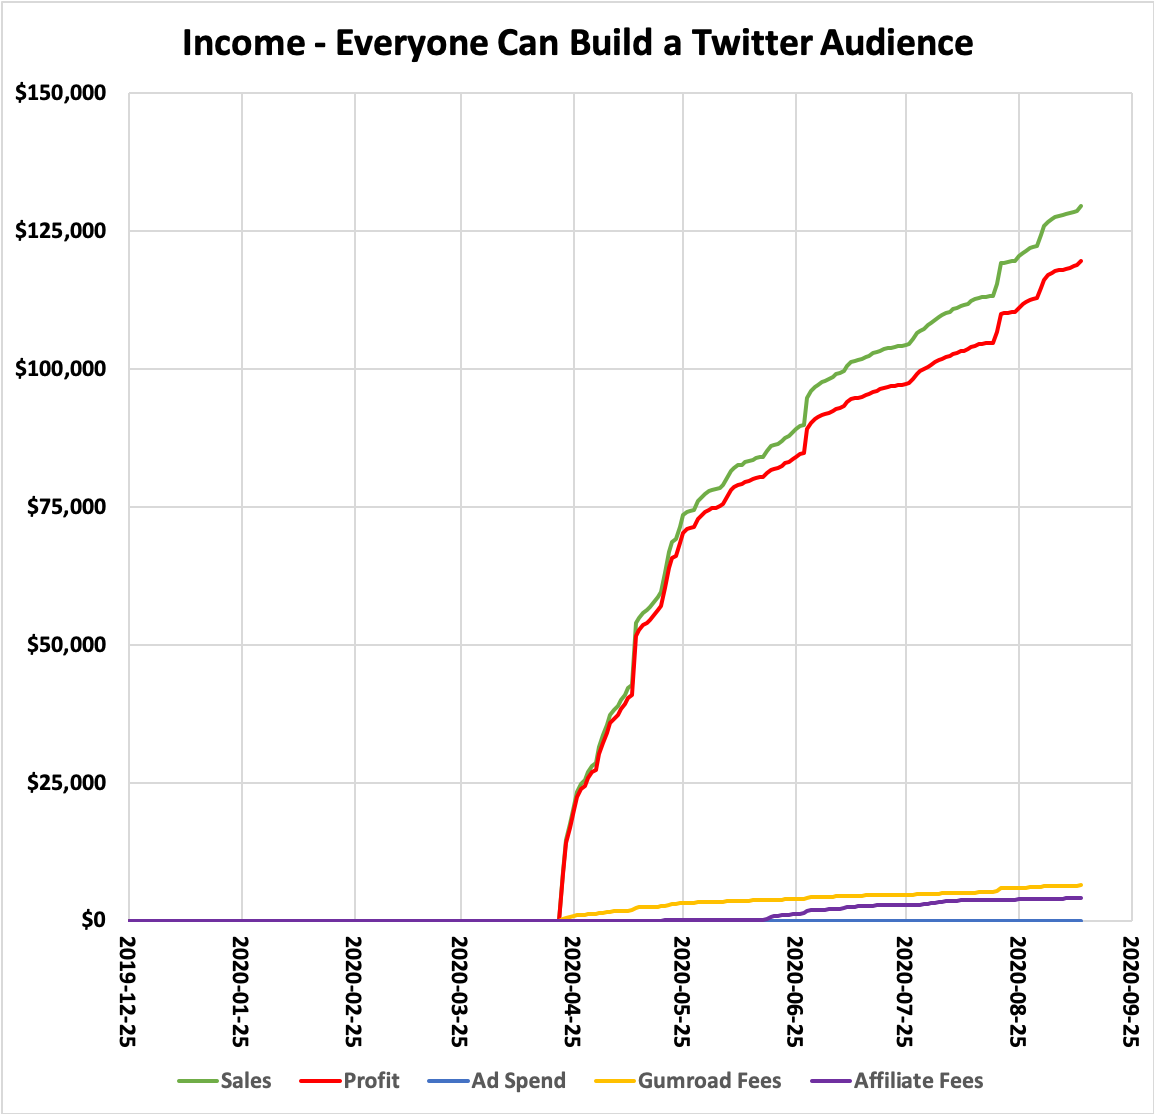 Income - Everyone Can Build a Twitter Audience